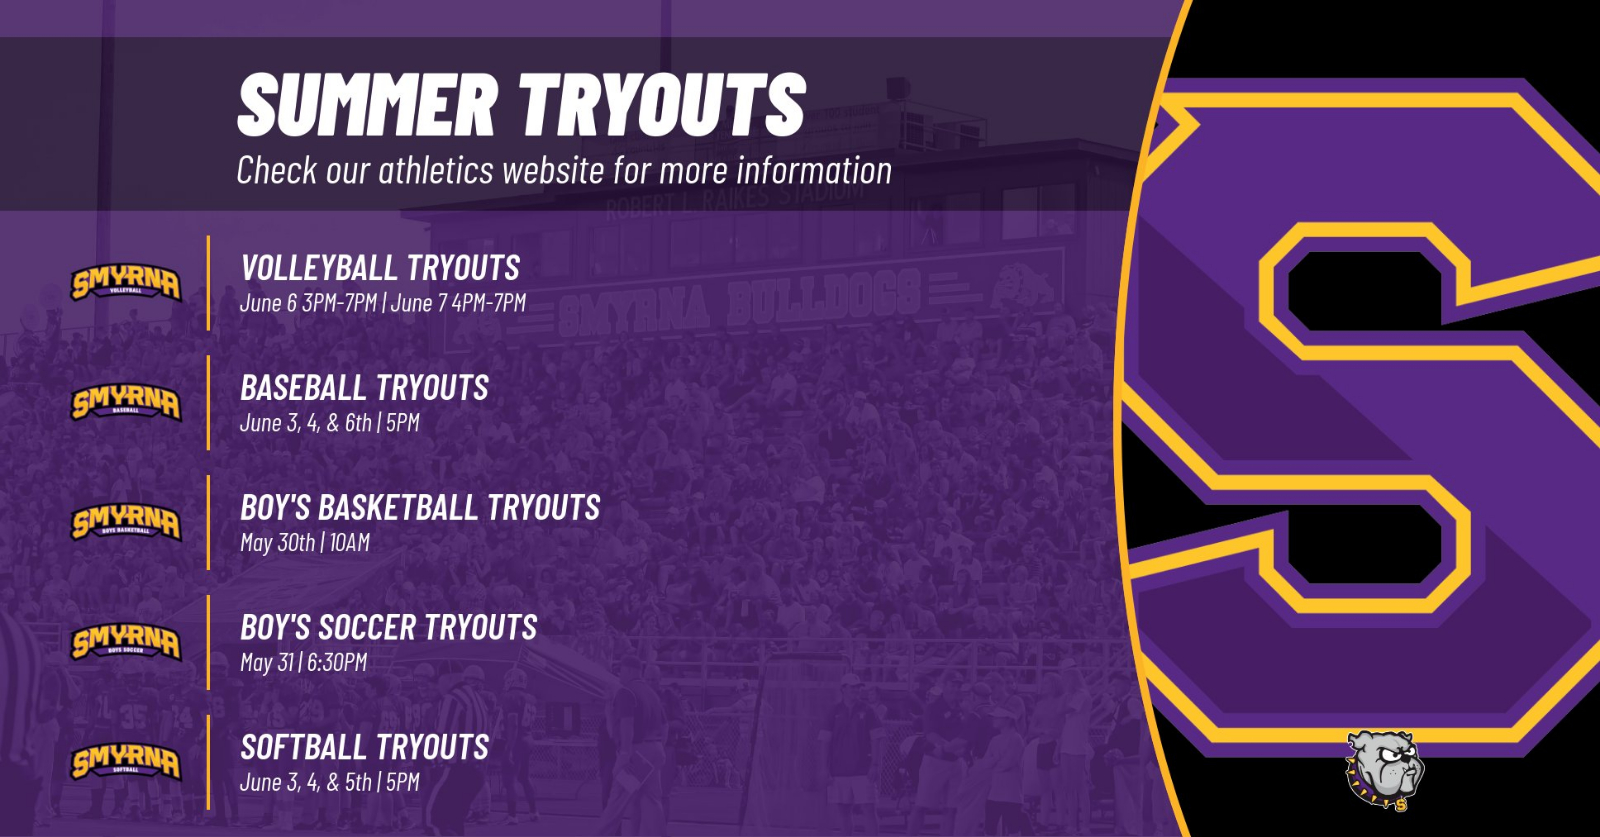 Summer Tryout Information